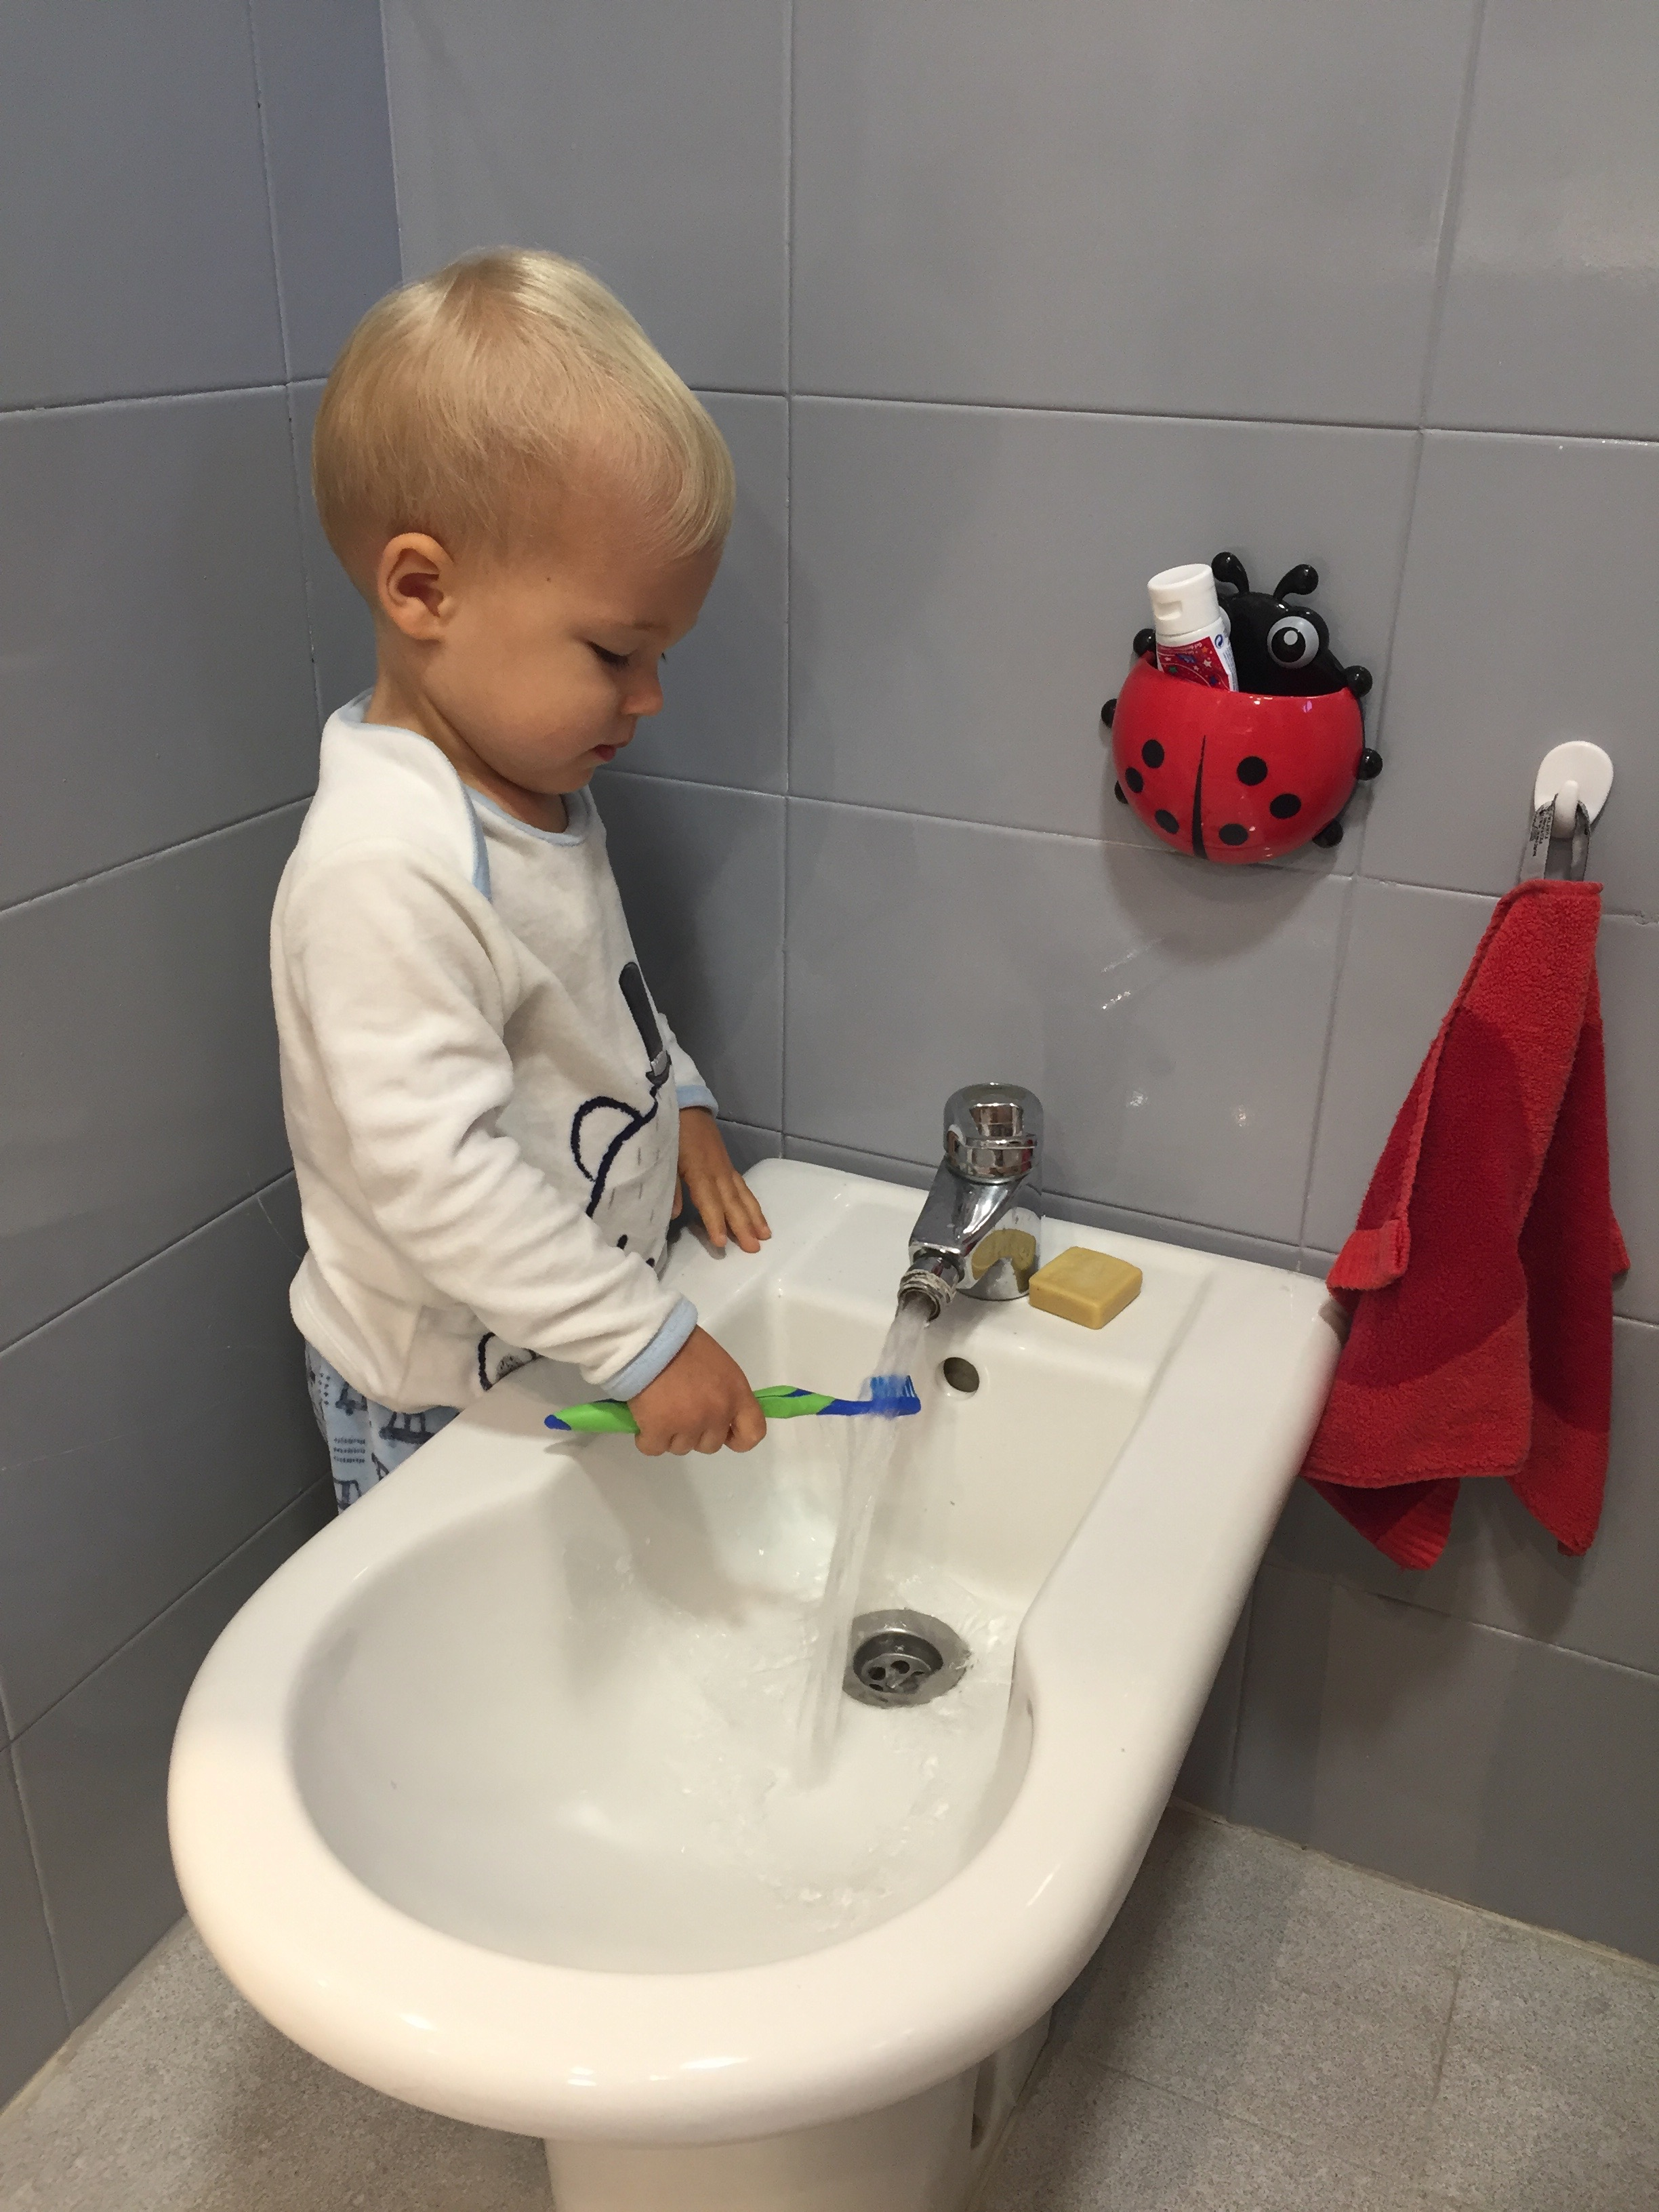 oliver brushing teeth